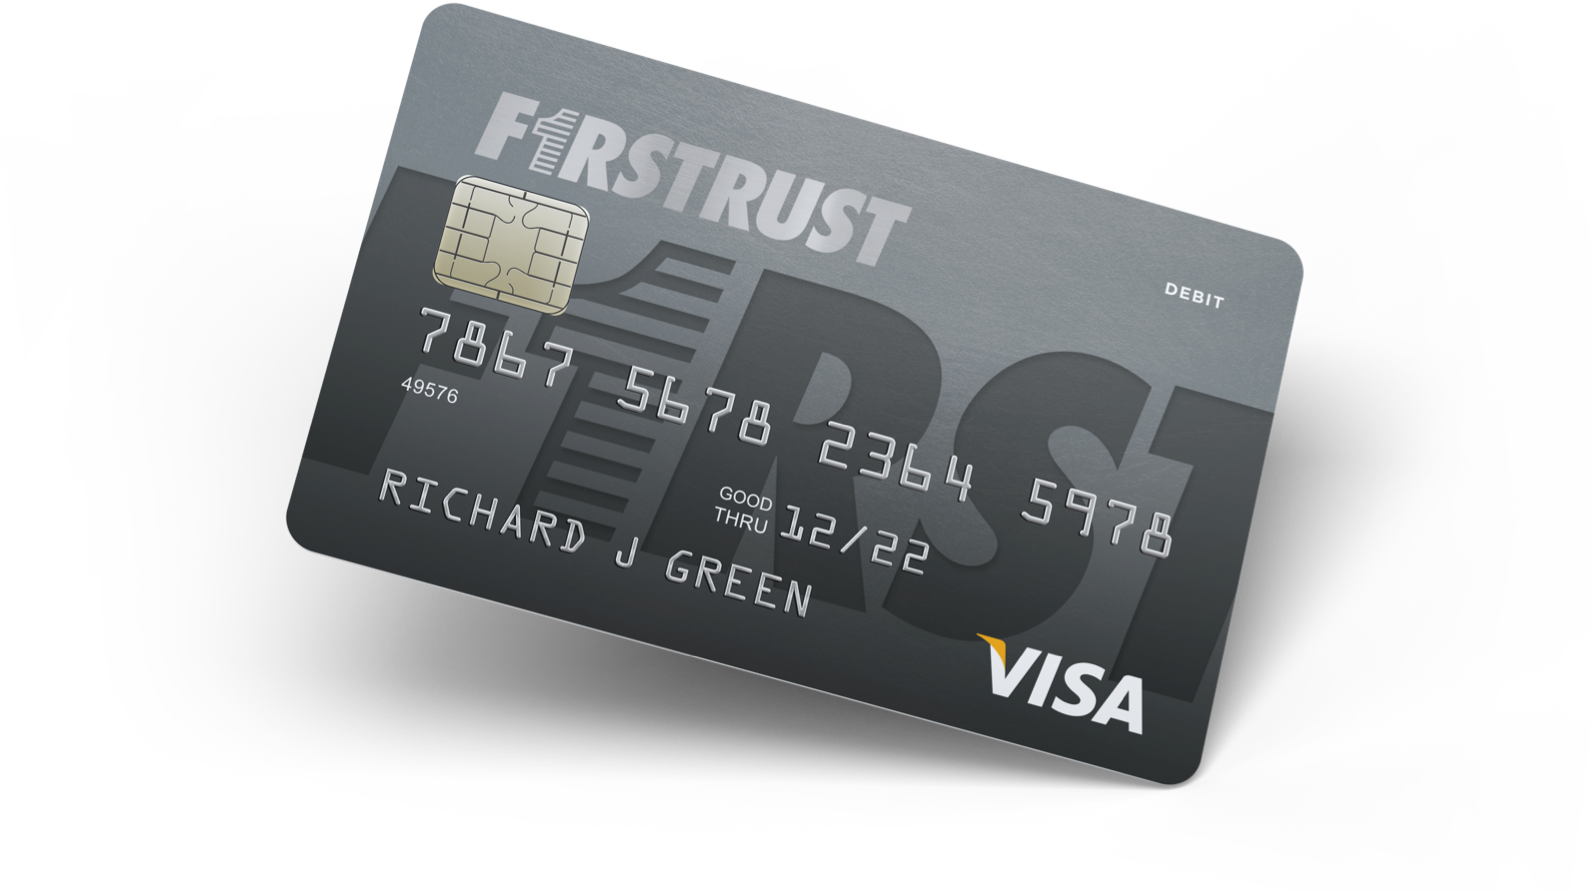 Firstrust debit card